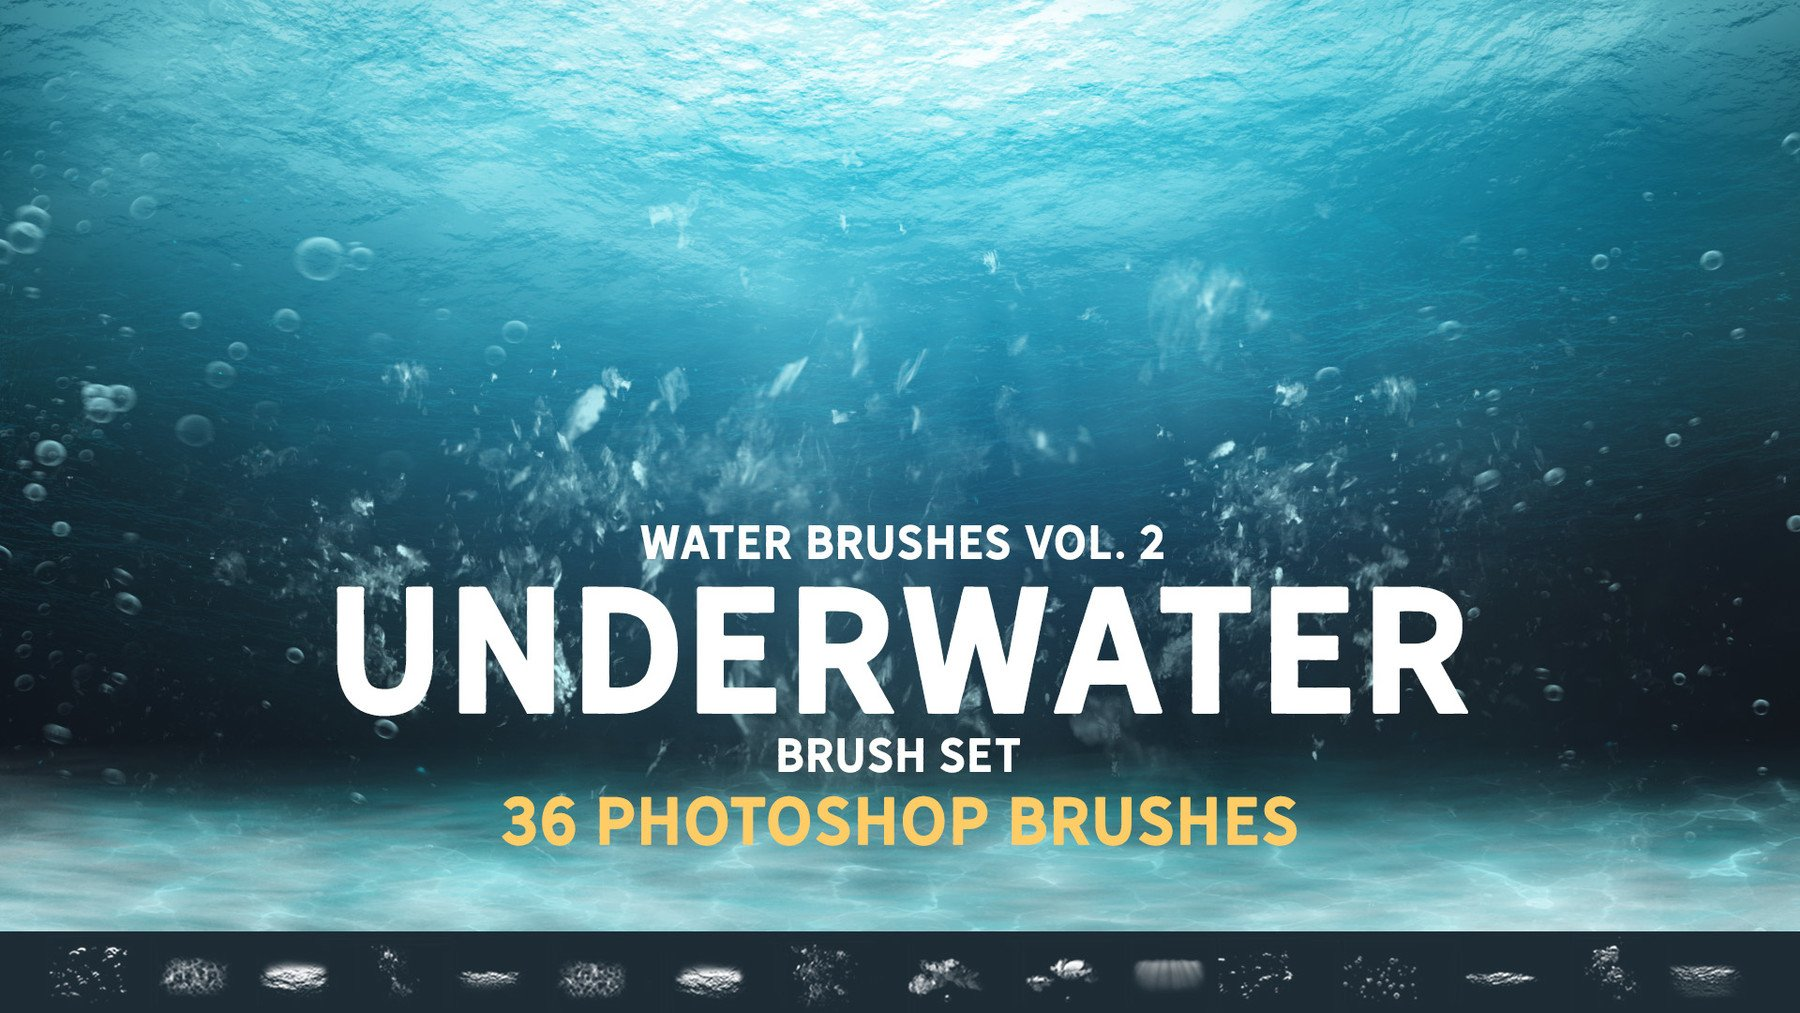 title card for the Underwater Brush Set